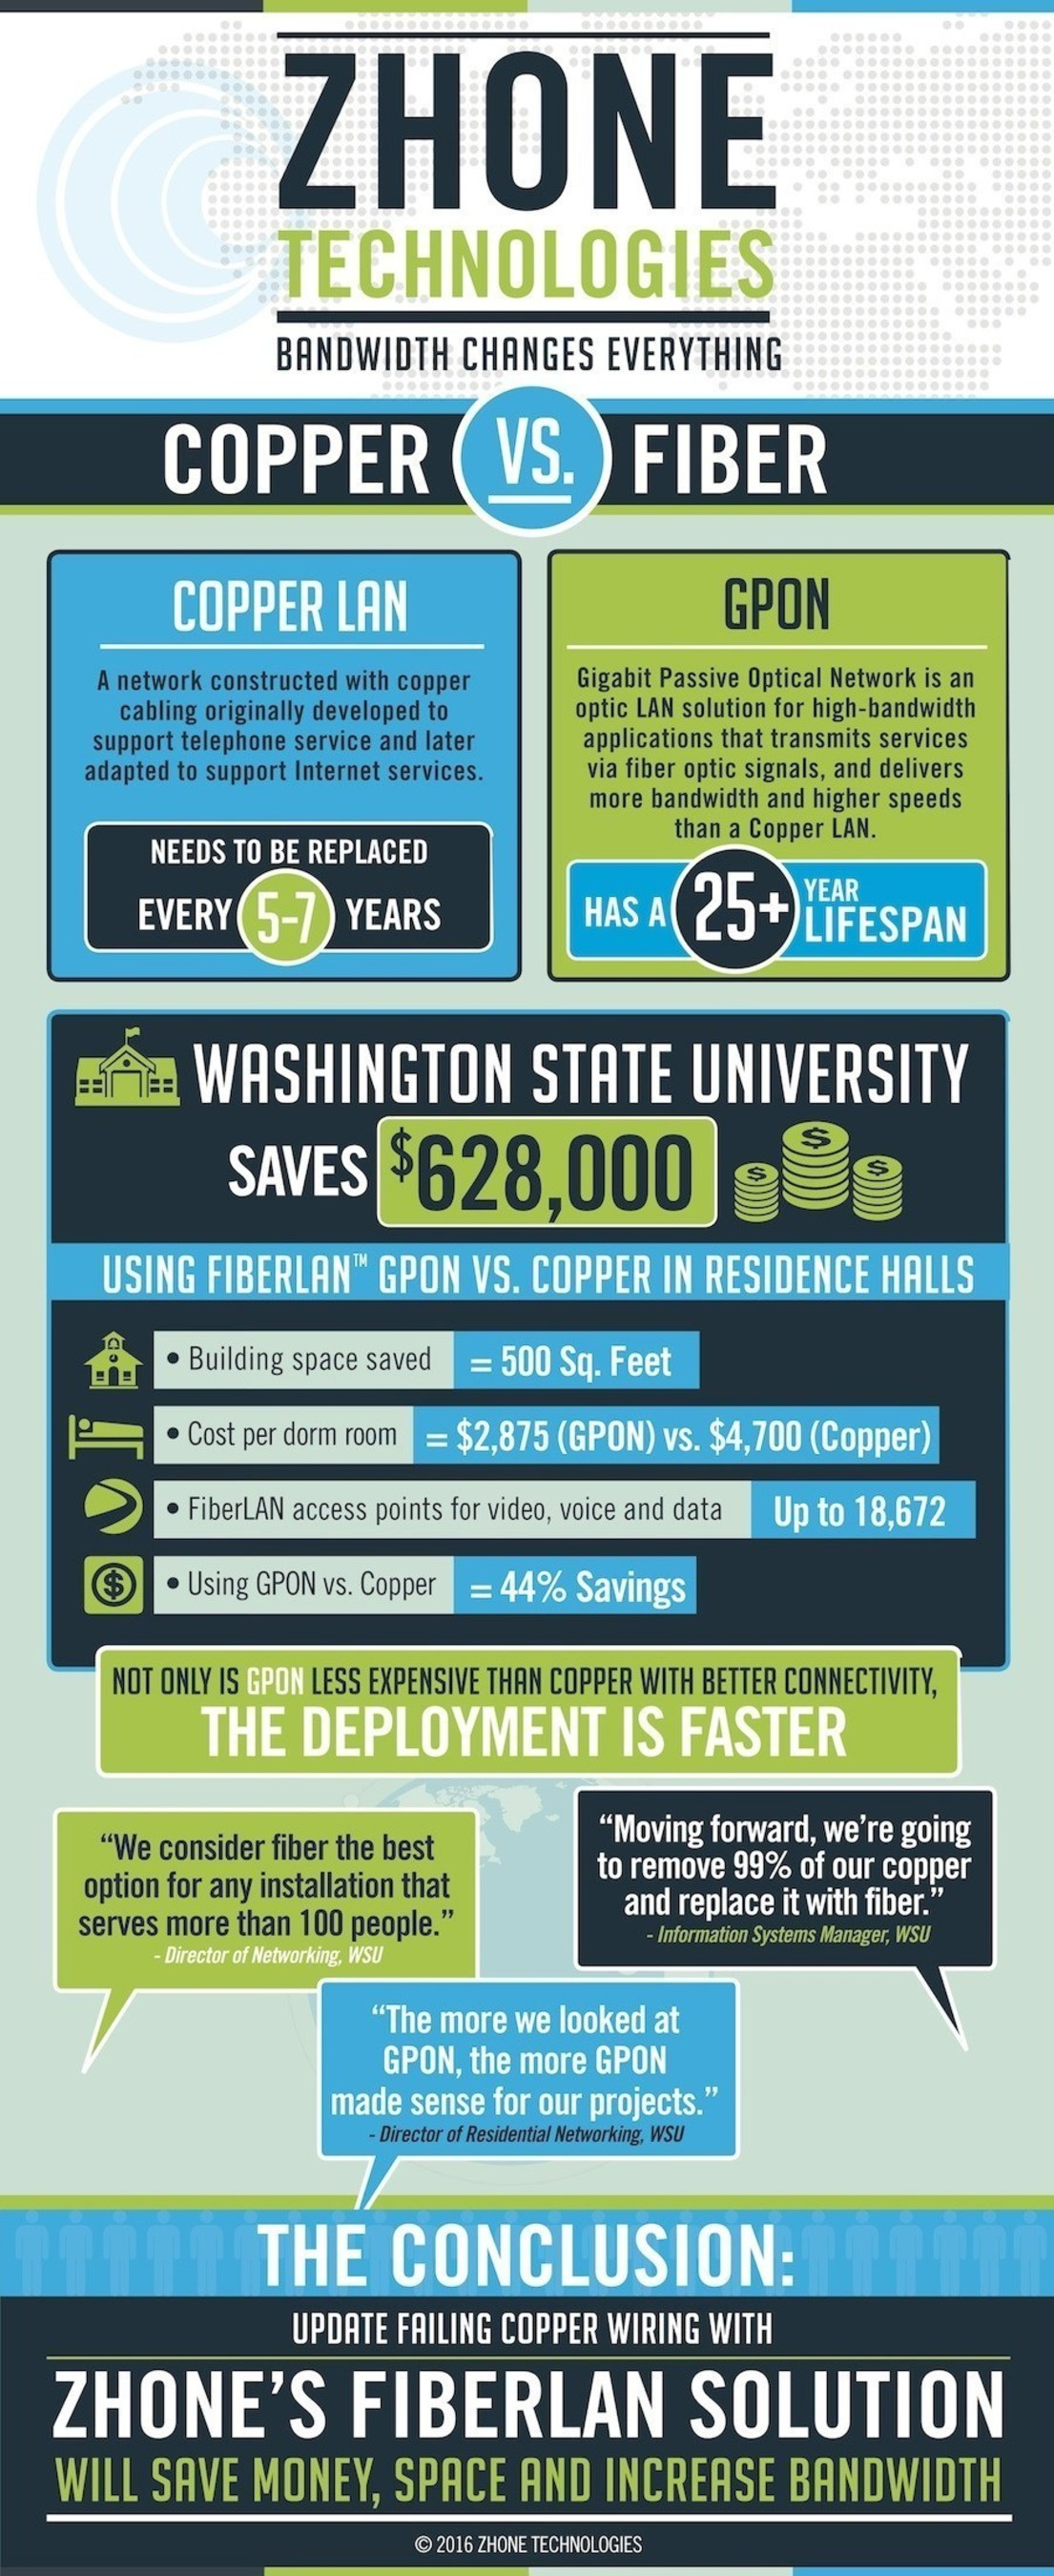 Case Study: Washington State University Saves $630,000 Using FiberLAN from Zhone Technologies in Residence Hall Deployment